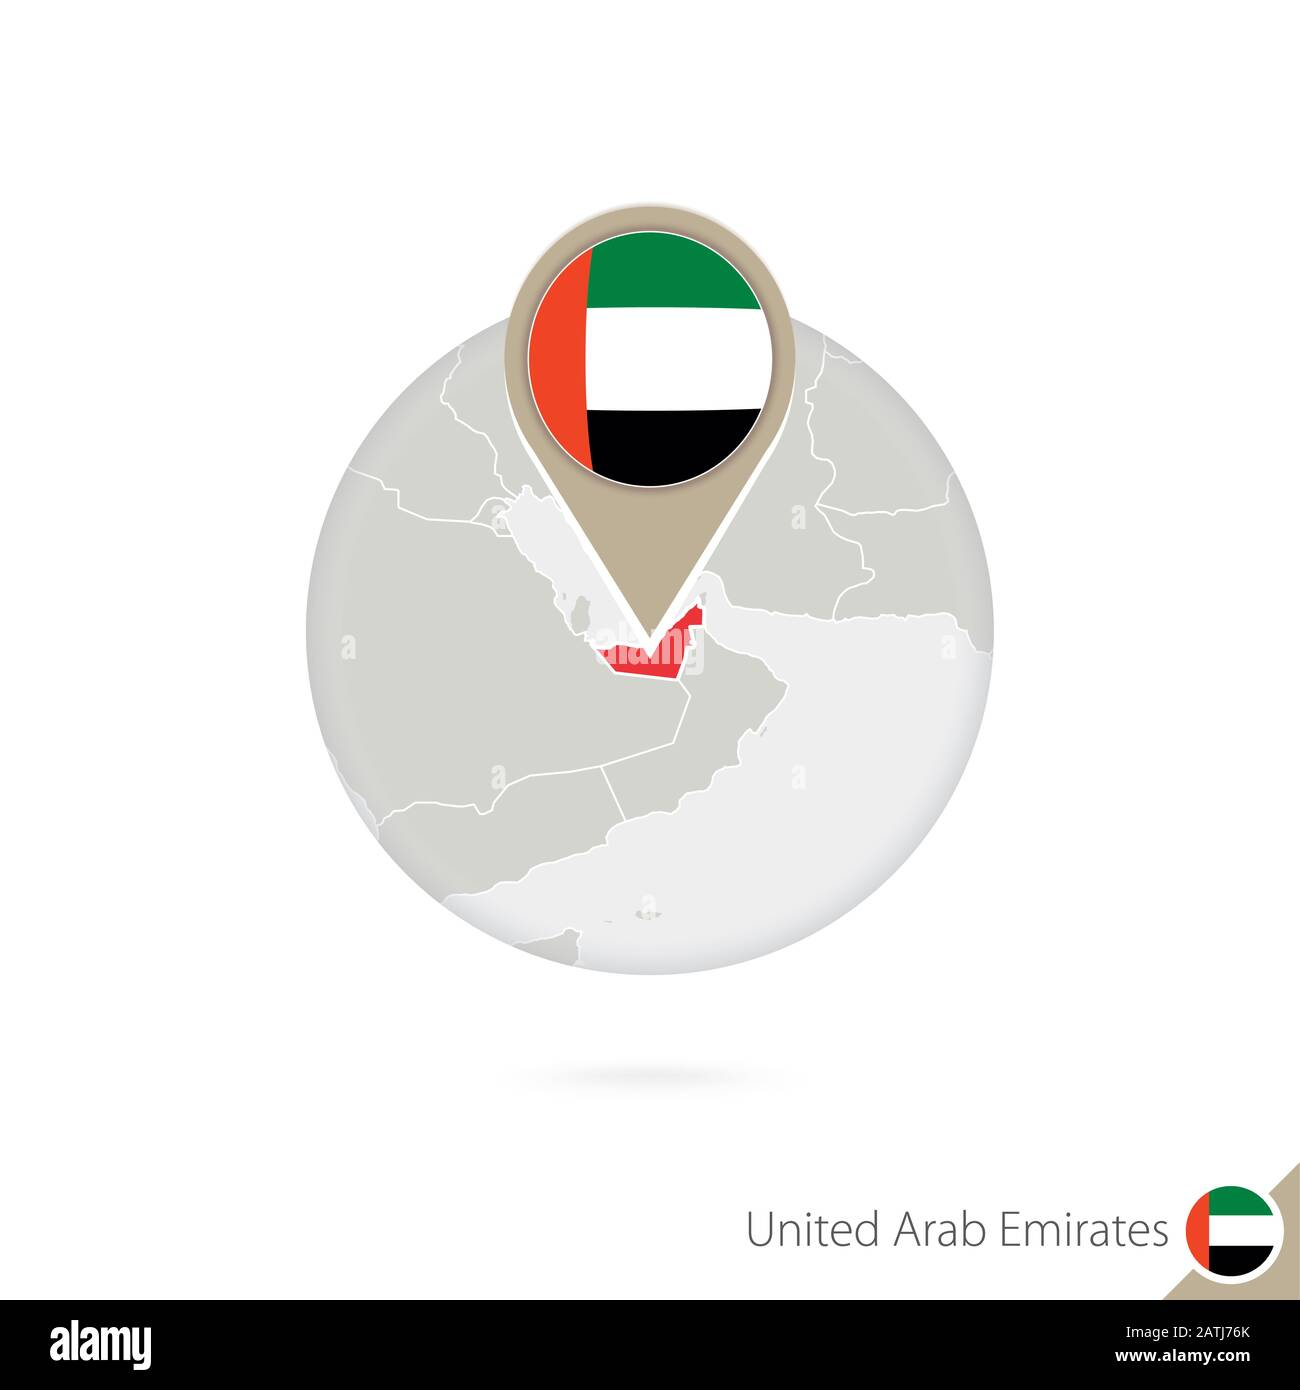 United Arab Emirates map and flag in circle. Map of UAE, UAE flag pin. Map of UAE in the style of the globe. Vector Illustration. Stock Vector